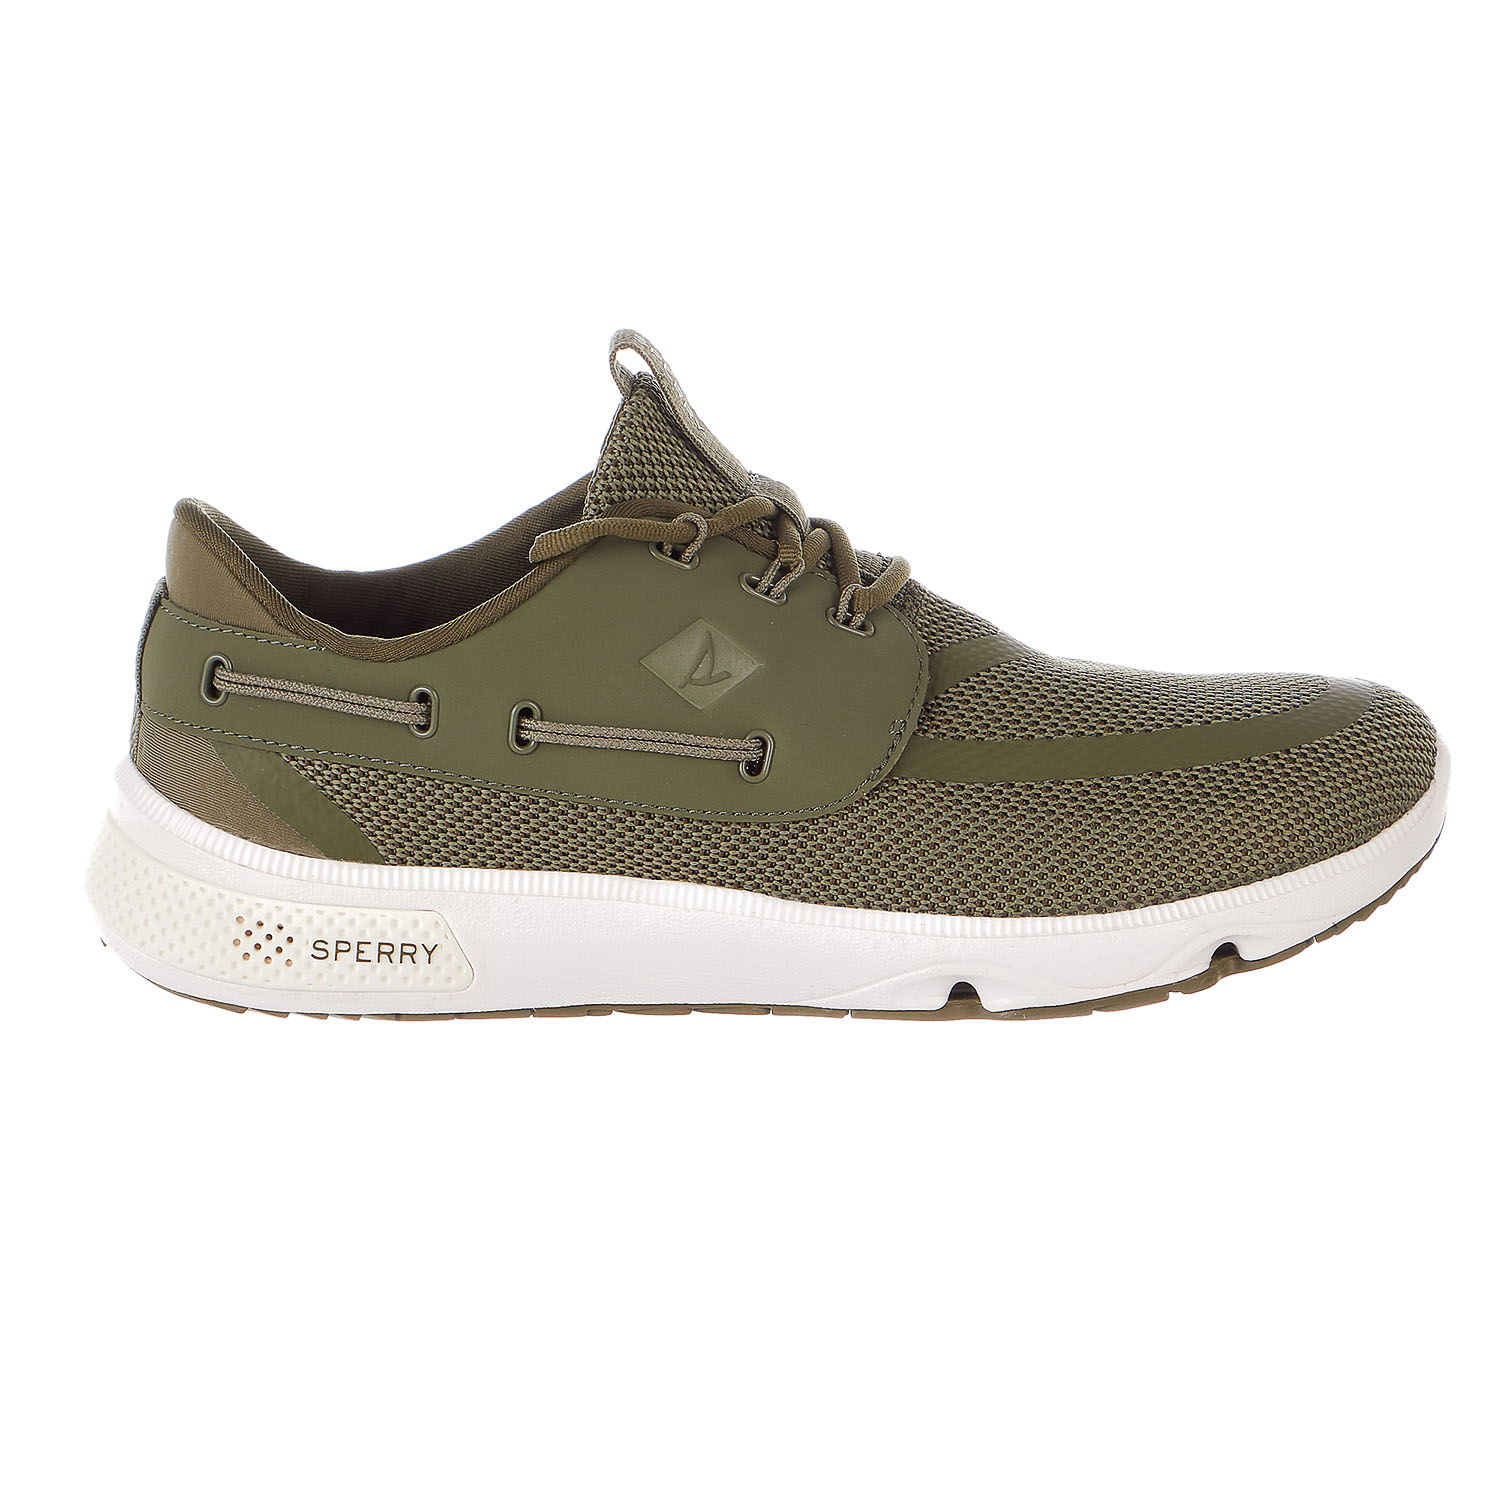 Sperry Top-Sider 7 Seas 3-Eye Boat Shoe Mens by Sperry Top-Sider